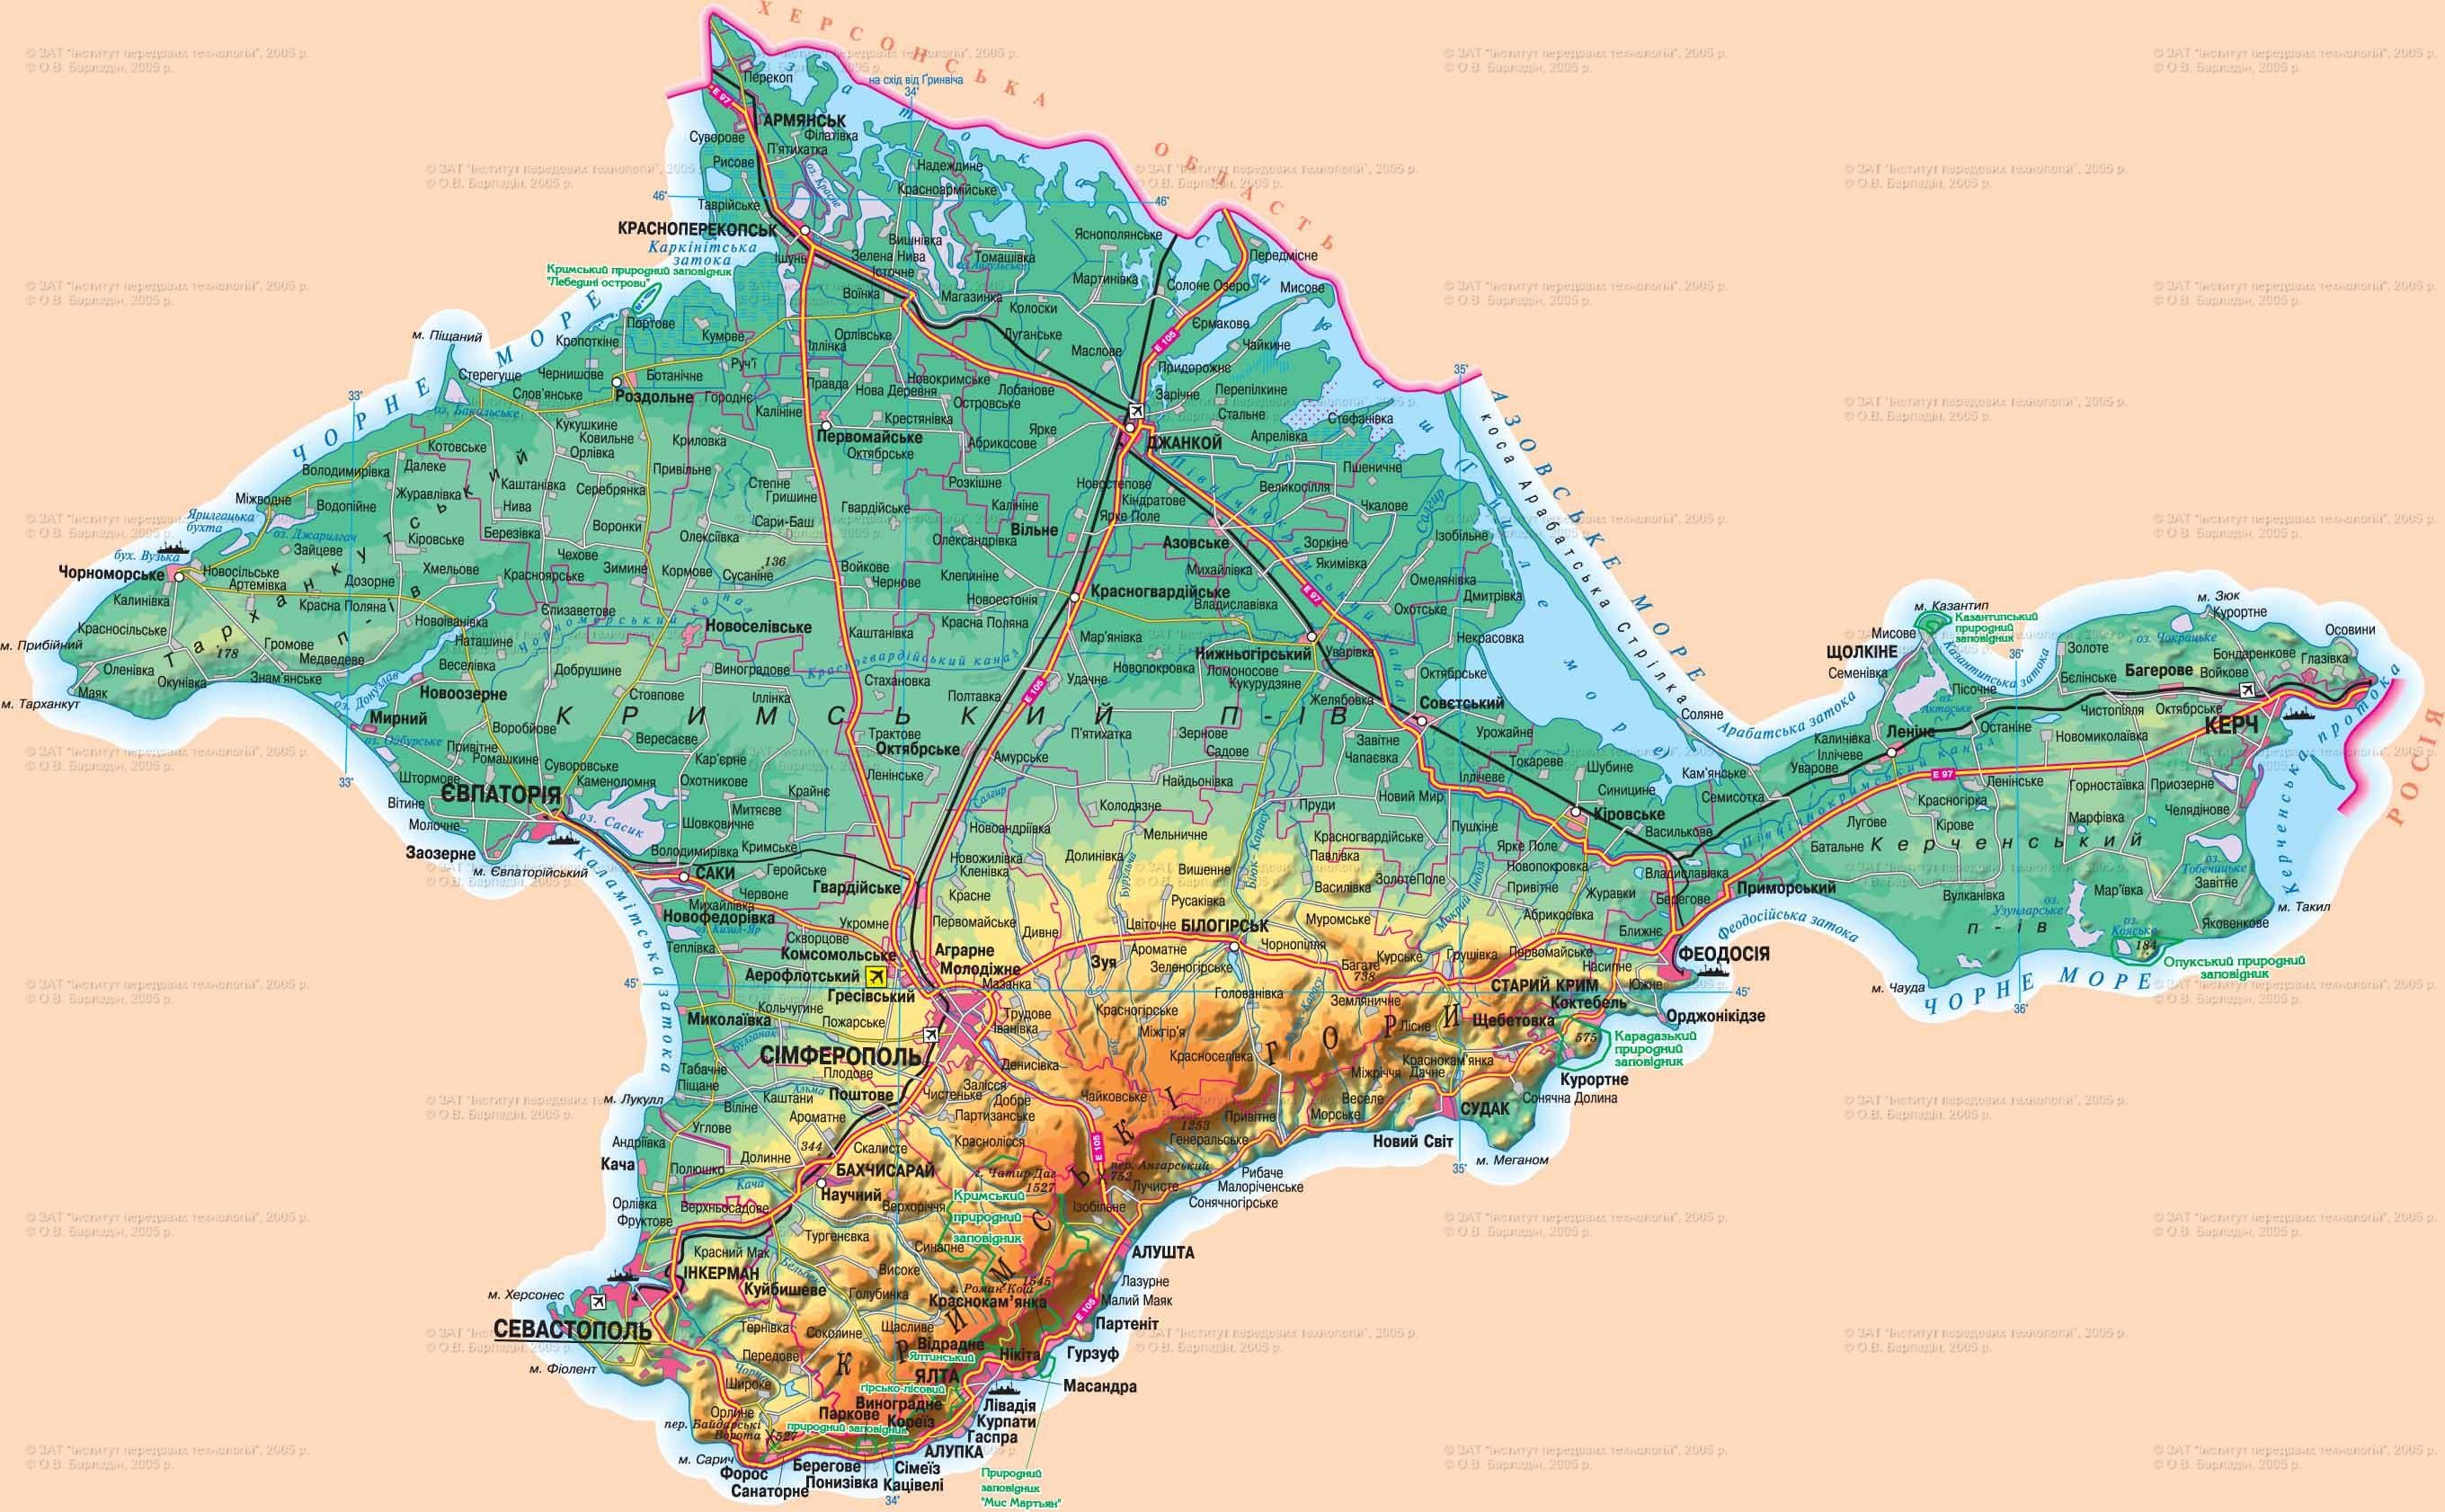 Physical and road map of Crimea Ukraine in Ukrainian Geology